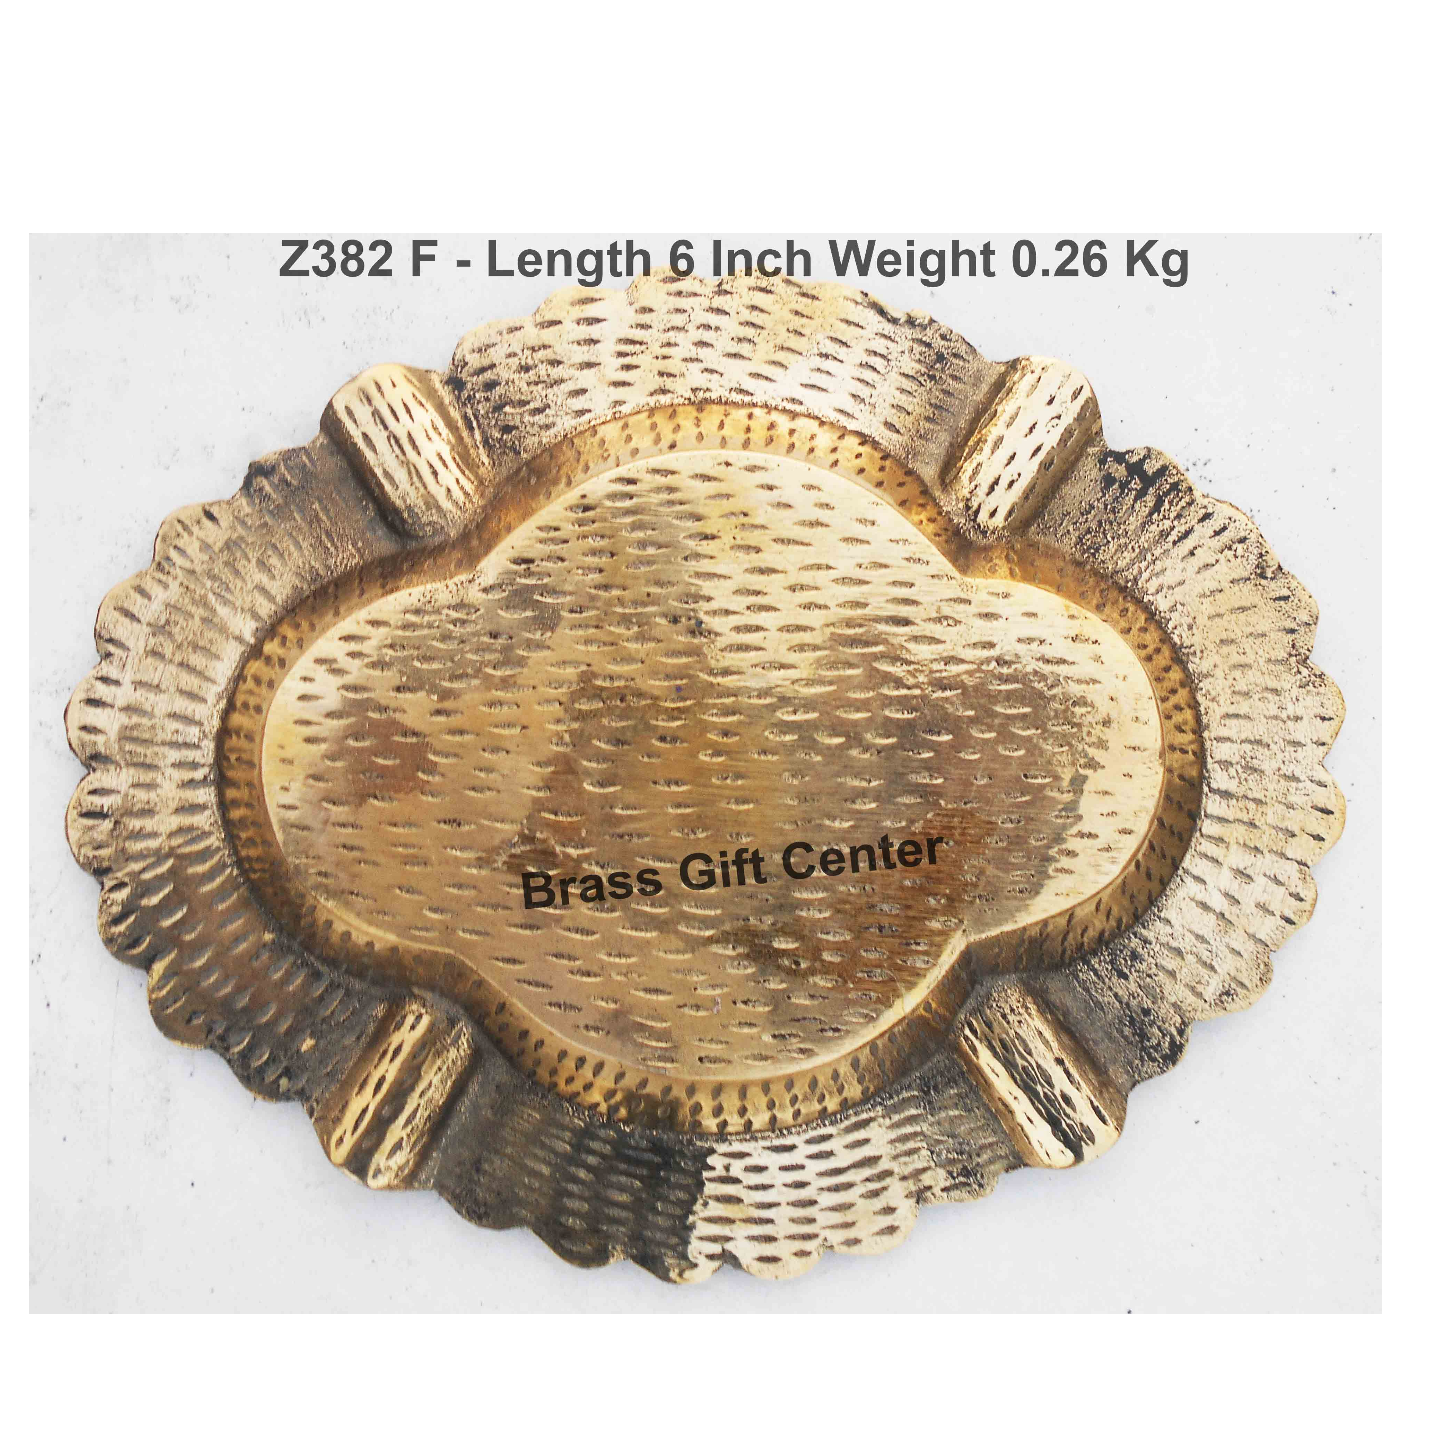 Brass Ash Tray With Multicloured Finsih -  6 Inch (Z382 F)